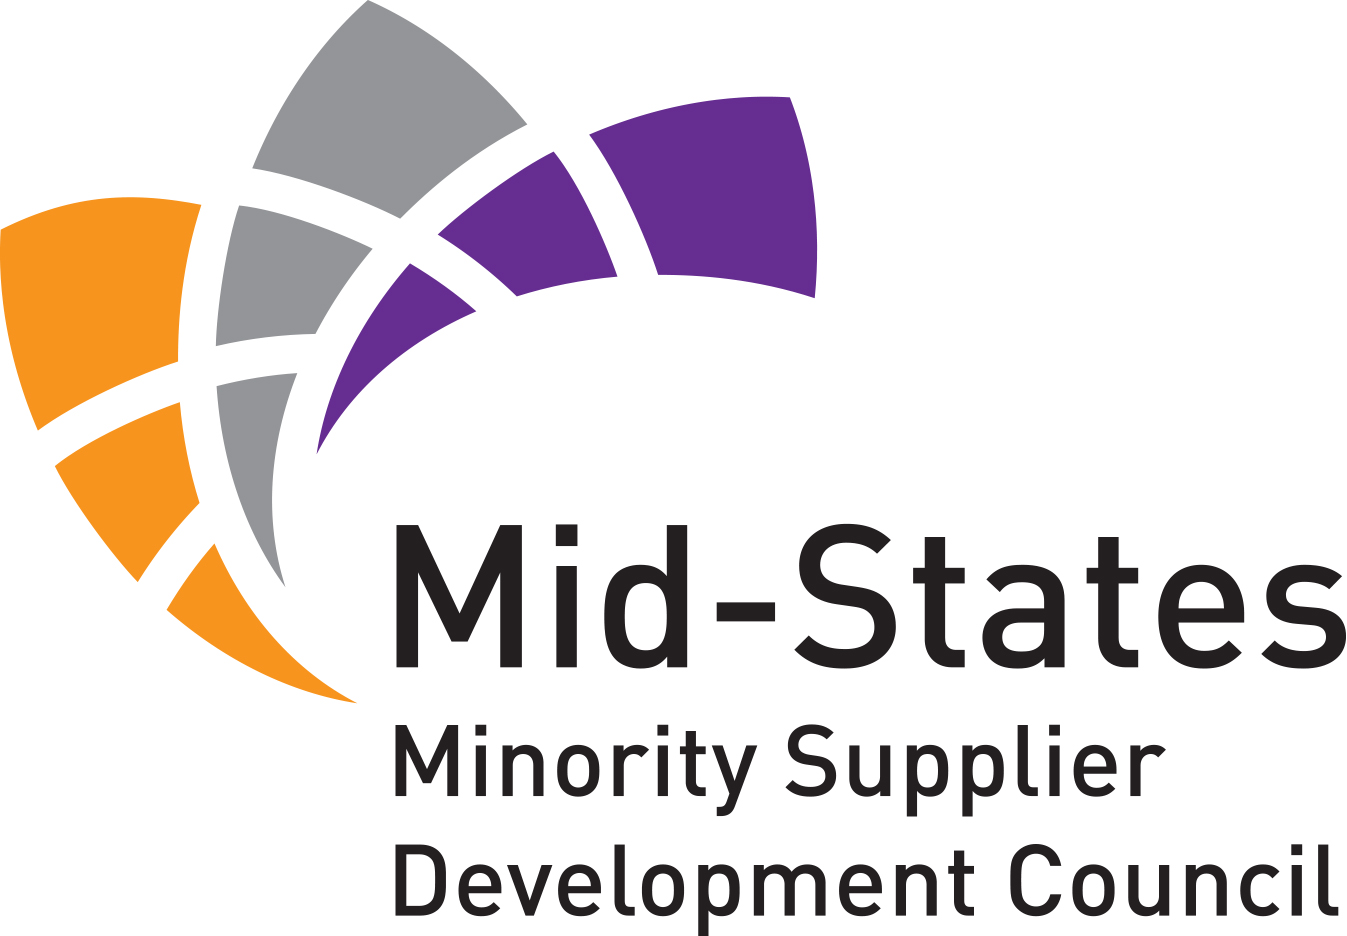 Mid-States-Minority-Supplier-Logo.jpg